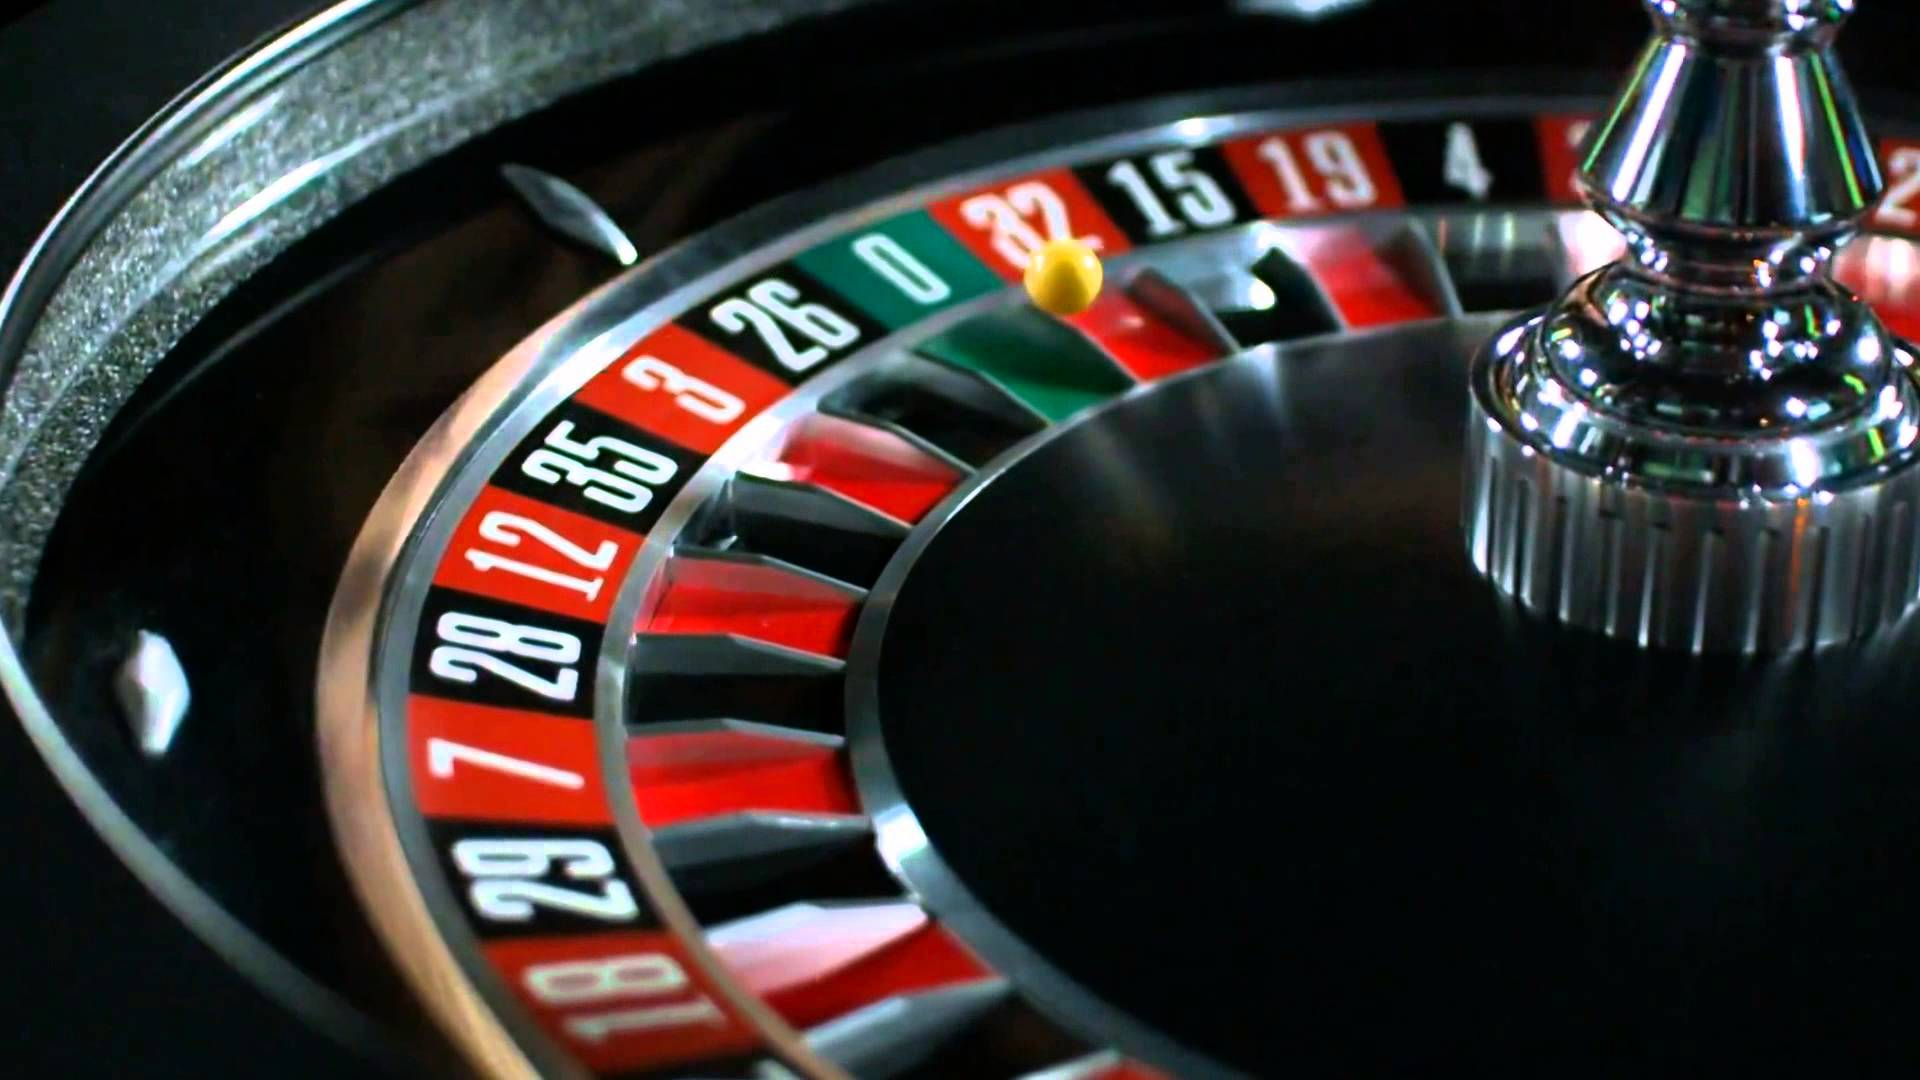 Casino Wallpaper Hd